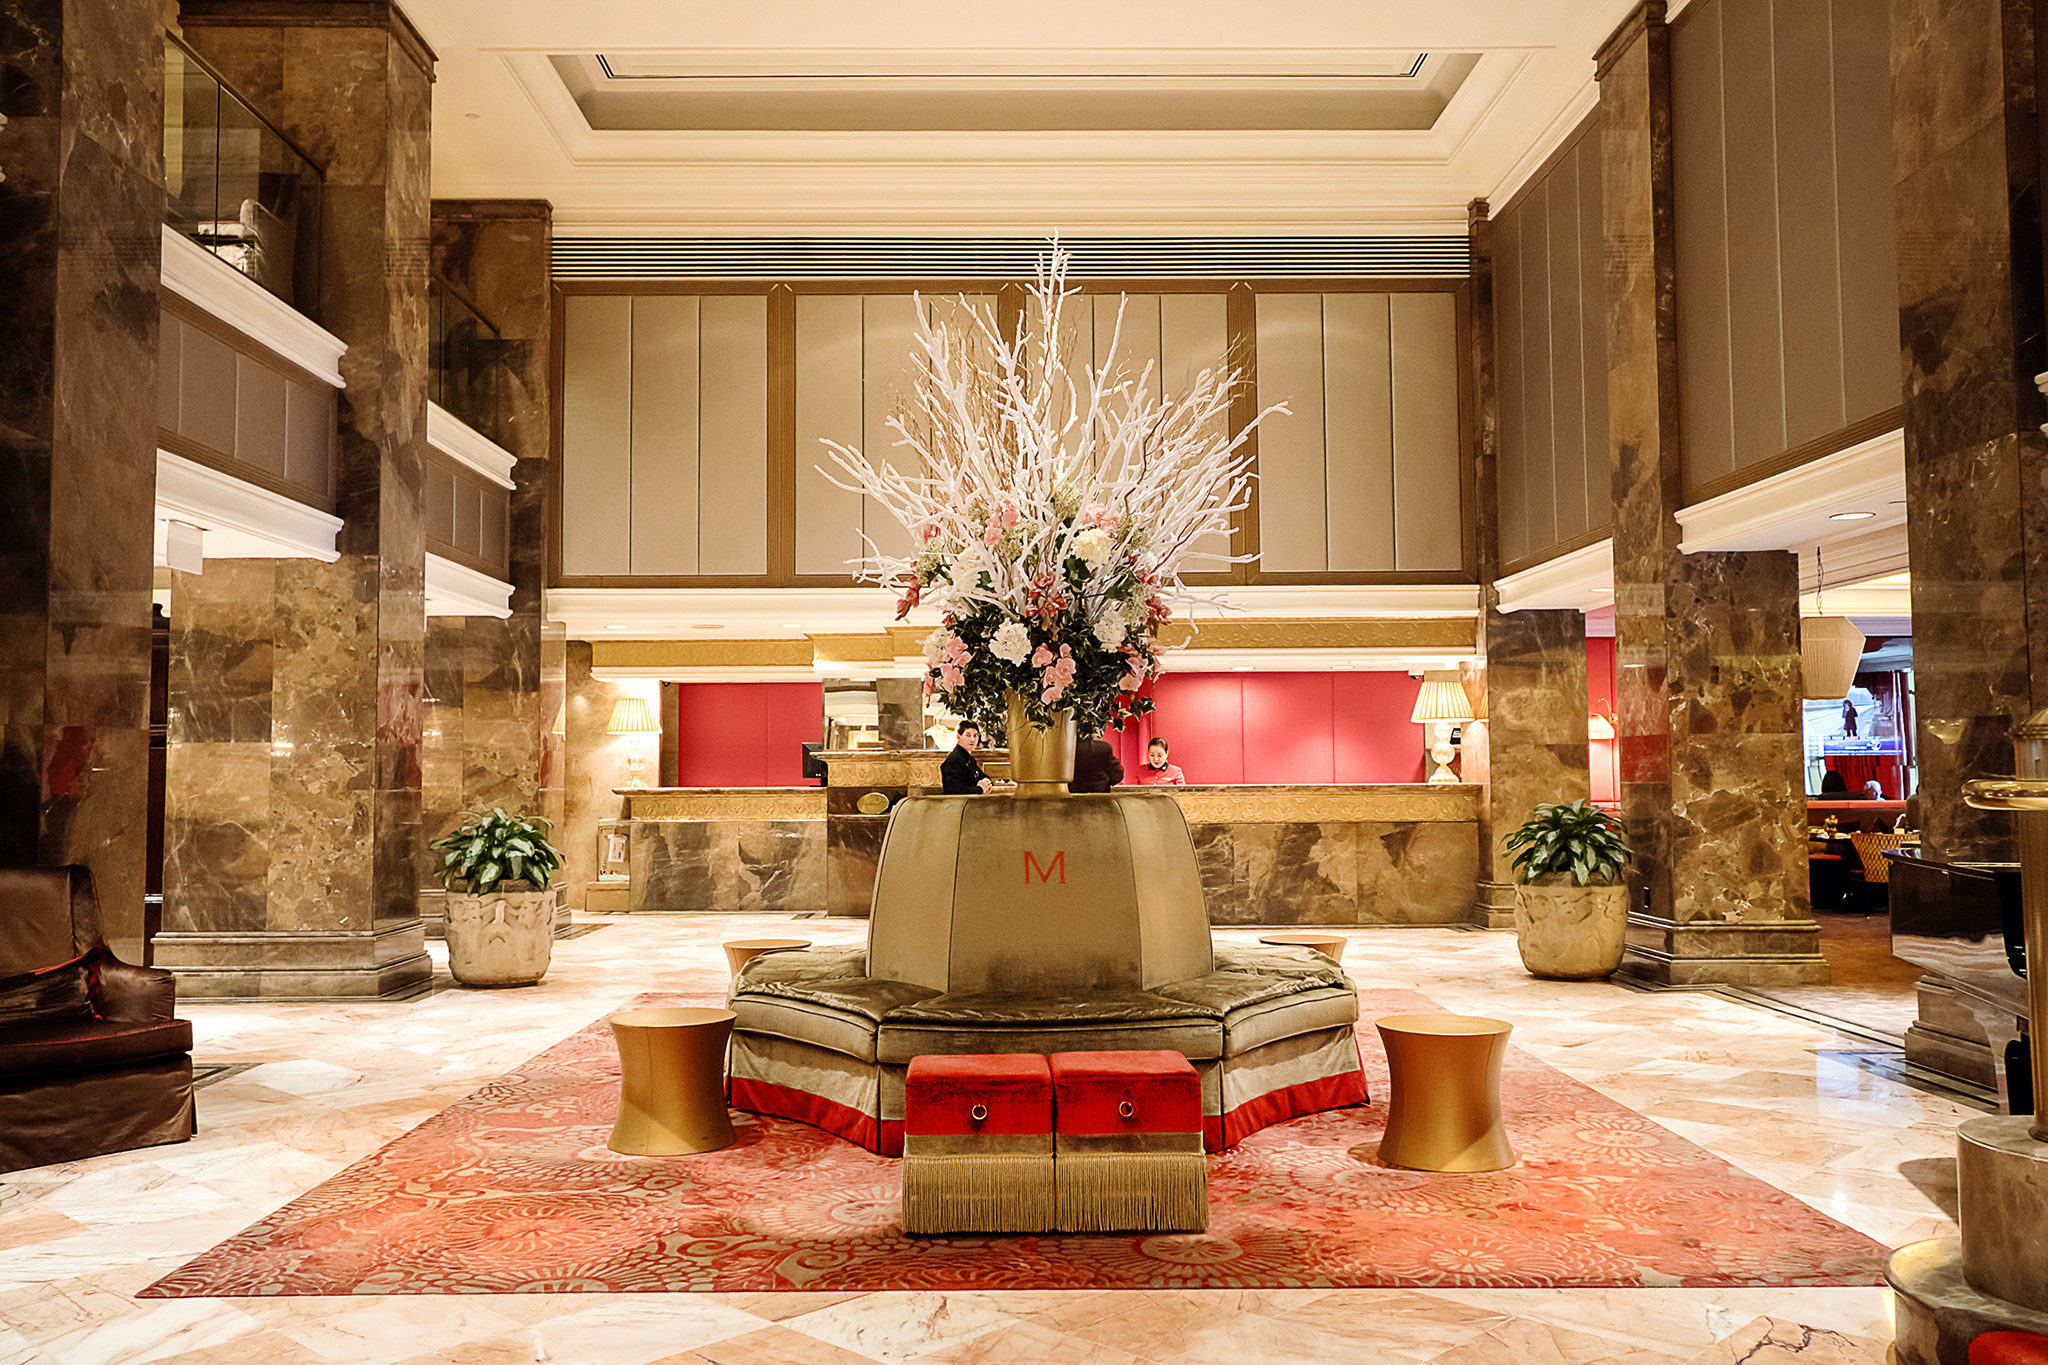 The best hotels near Rockefeller Center